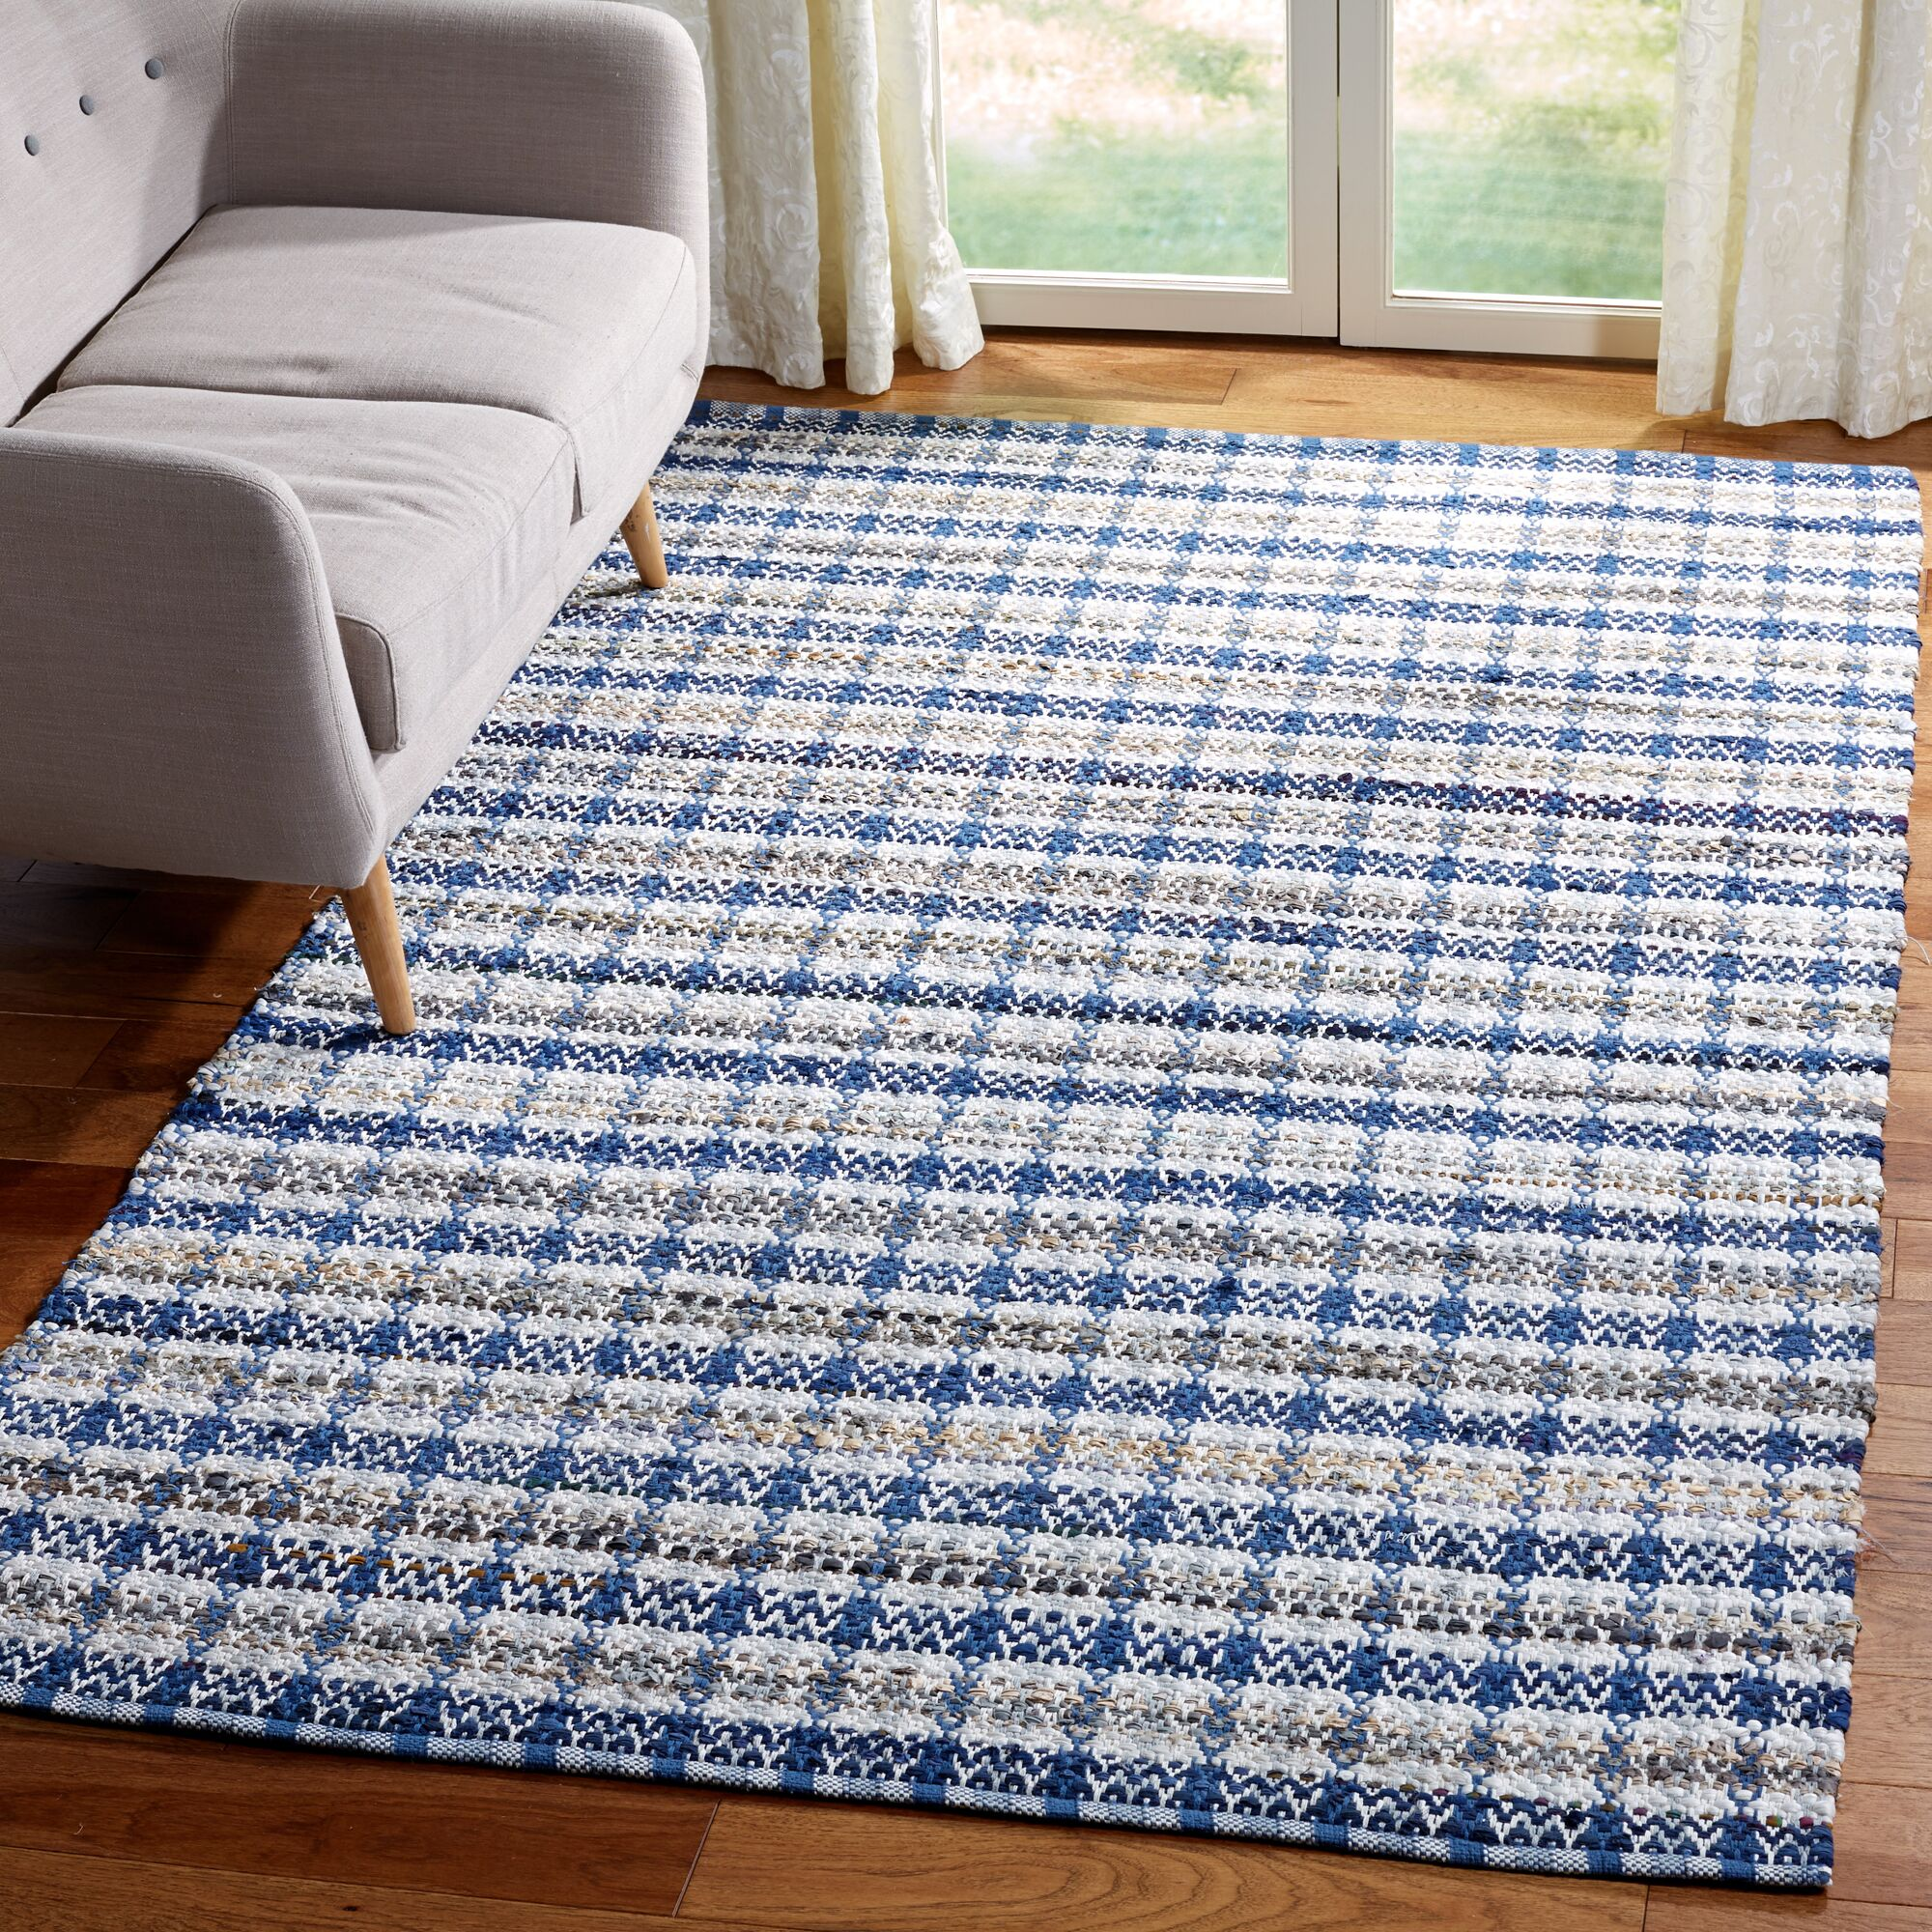 Bester Hand-Woven Cotton Blue/White Area Rug Rug Size: Rectangular 8' x 10'